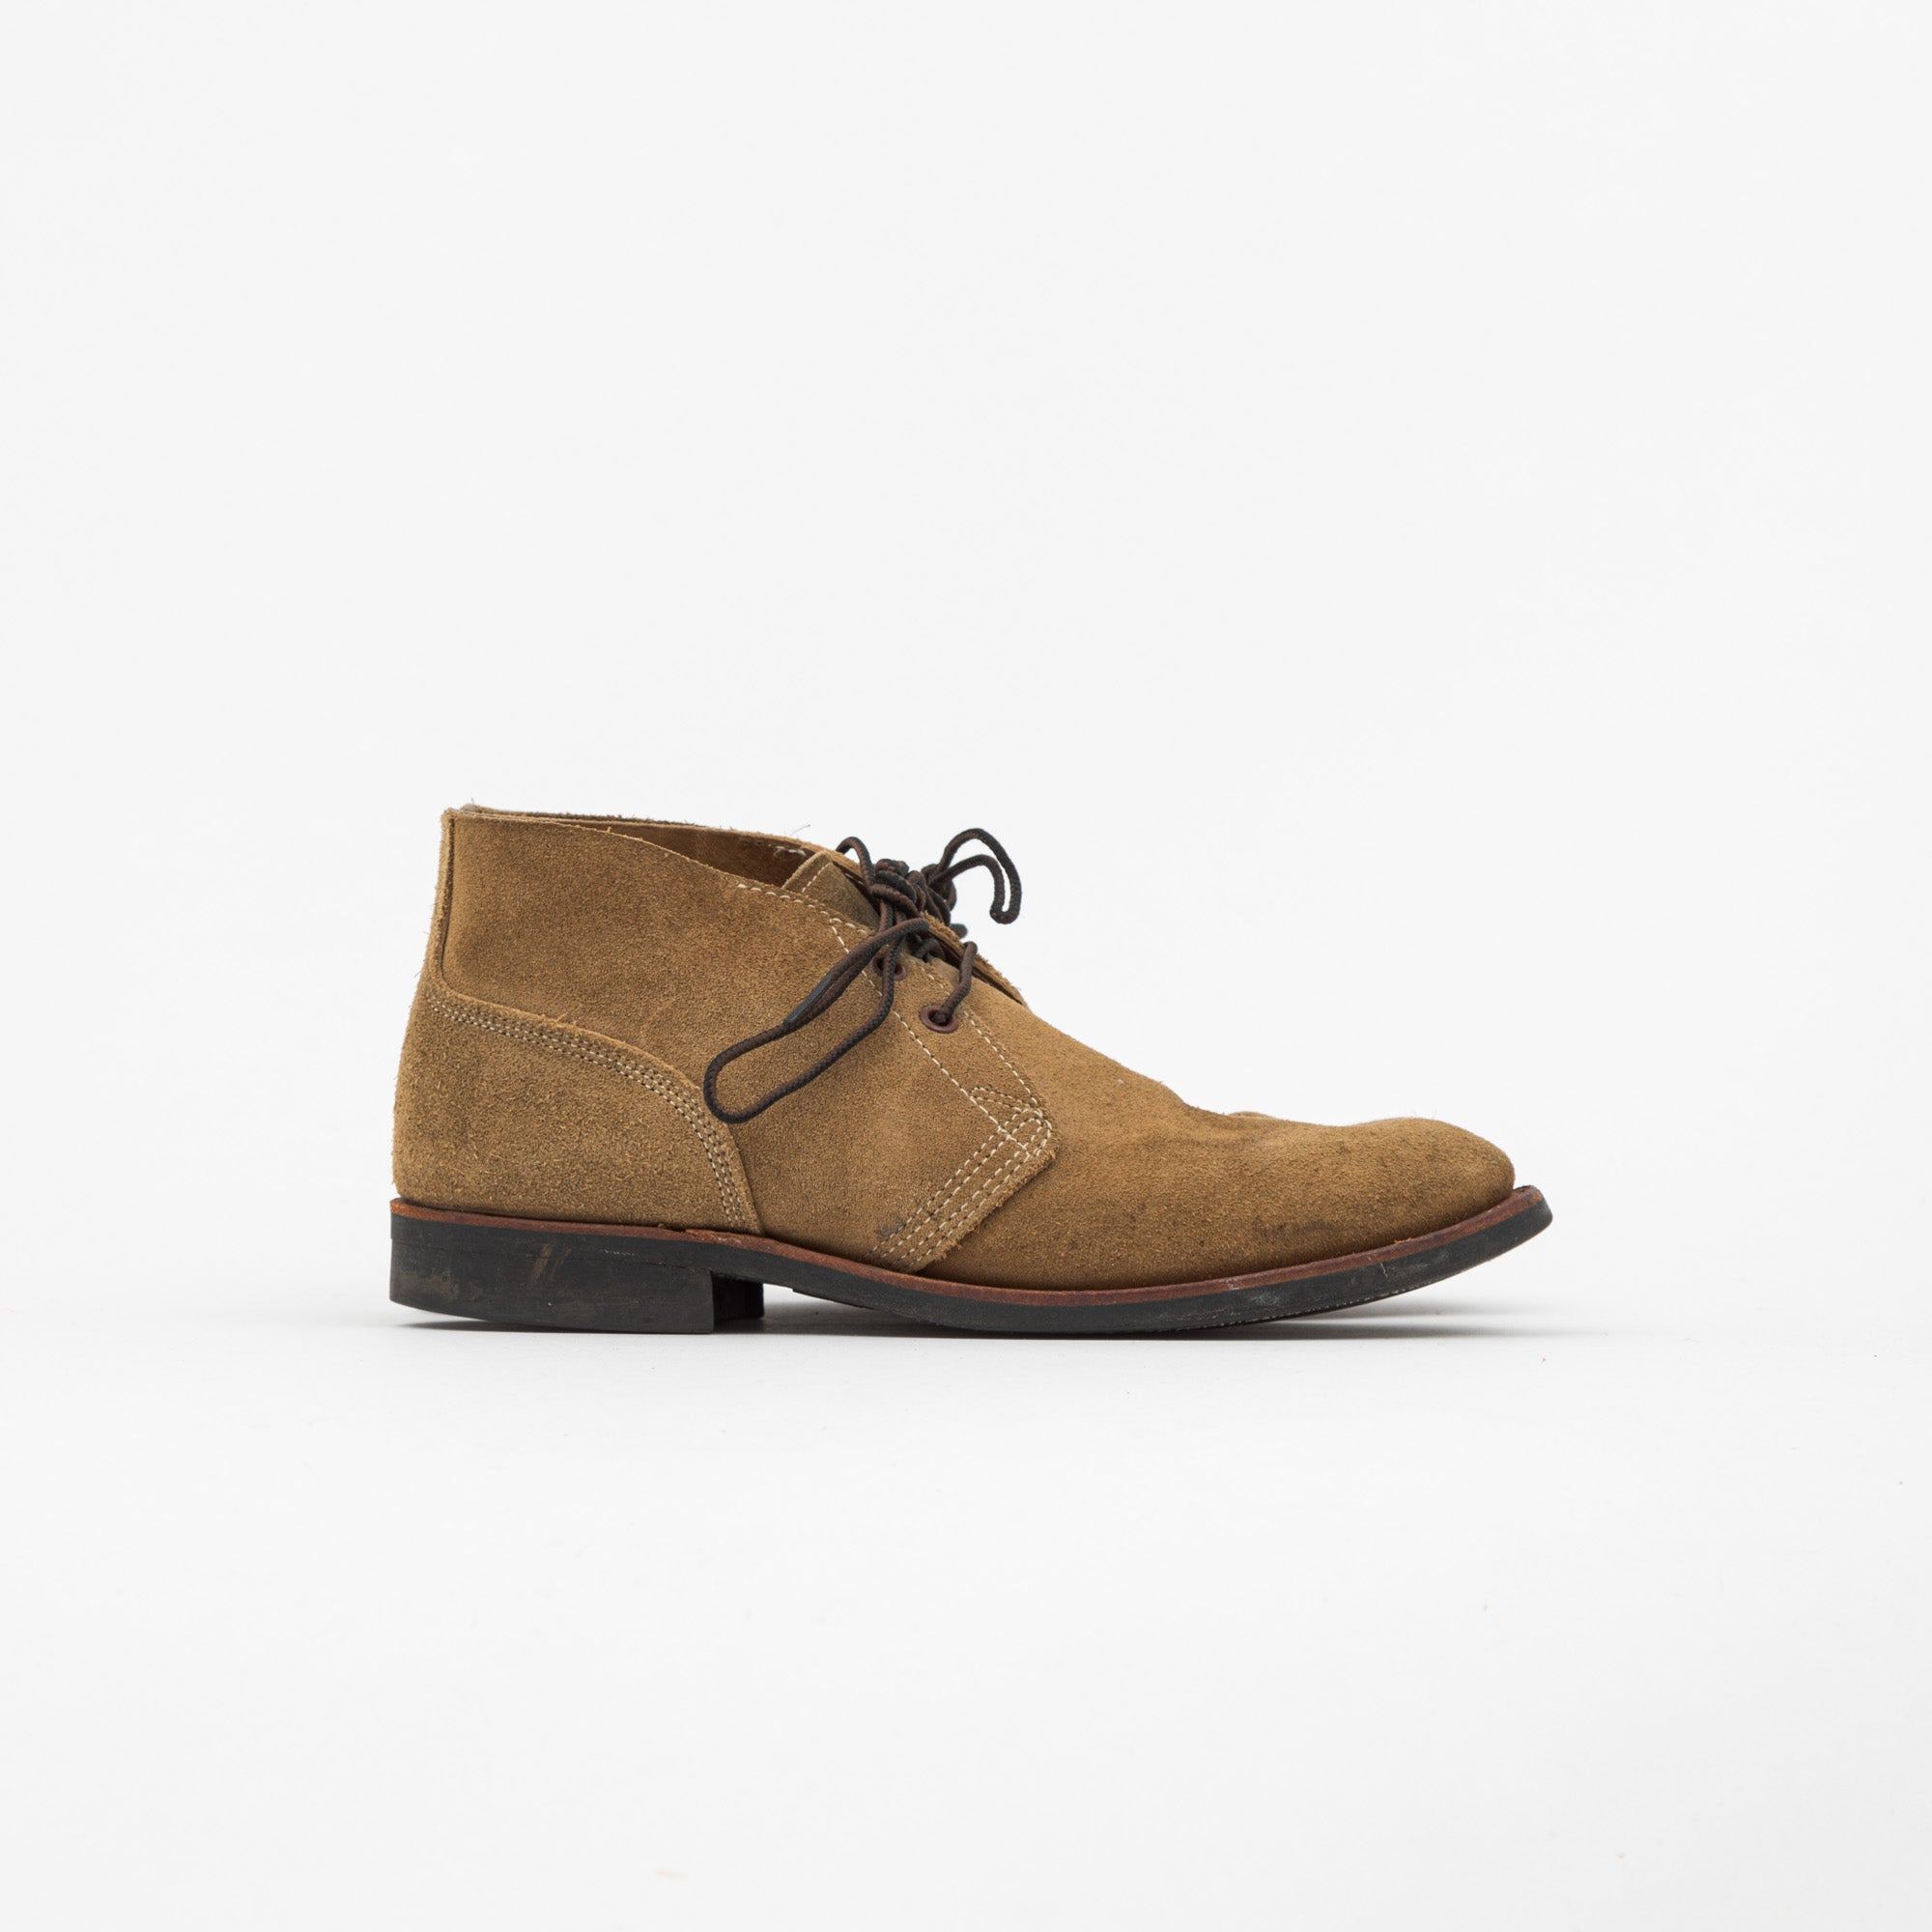 RRL Rough-out Suede Boots